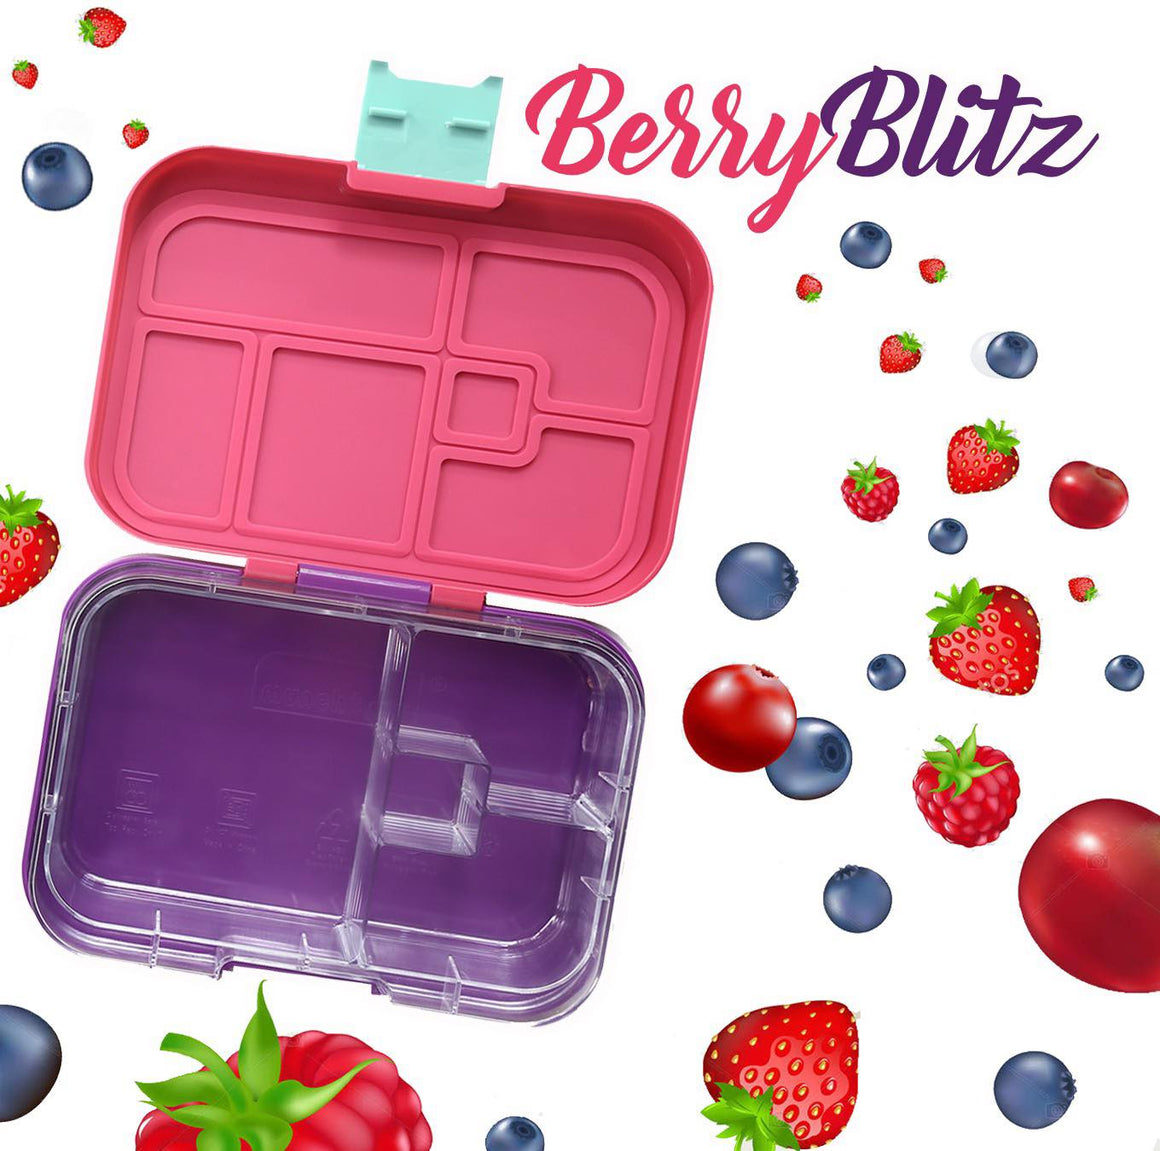 Mini4 - Berry Blitz - YYZ Distribution